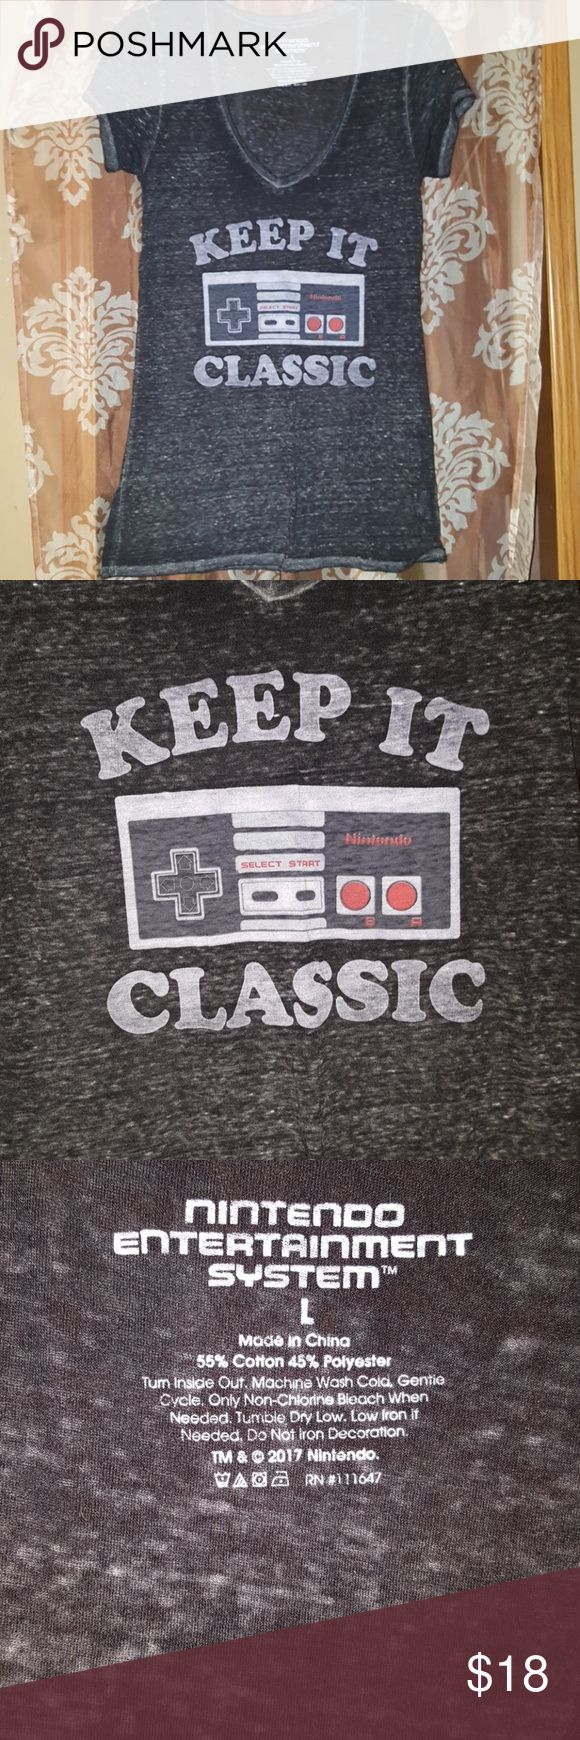 NWT Nintendo Licensed Retro Classic Tee Brand NEW with Tags!! Super Soft Nintendo tee with the old school NES controller on the front thatbwas Keep it Classic. Black/Gray Distressed look This top is ridiculously soft!! Nintendo Tops Tees - Short Sleeve